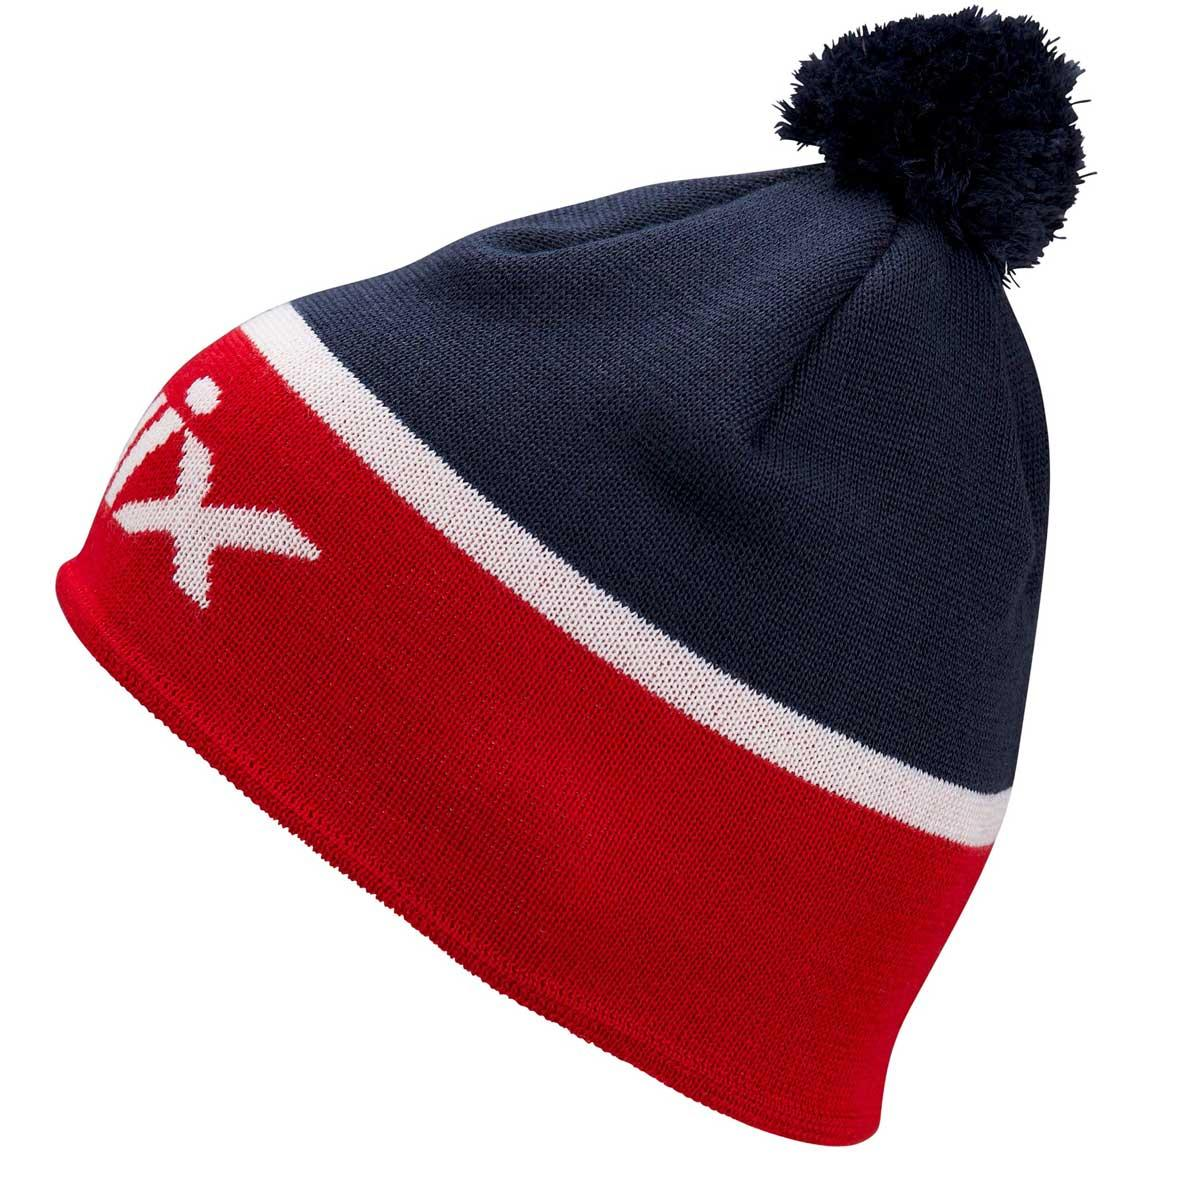 Swix Surmount Beanie in Norwegian Mix